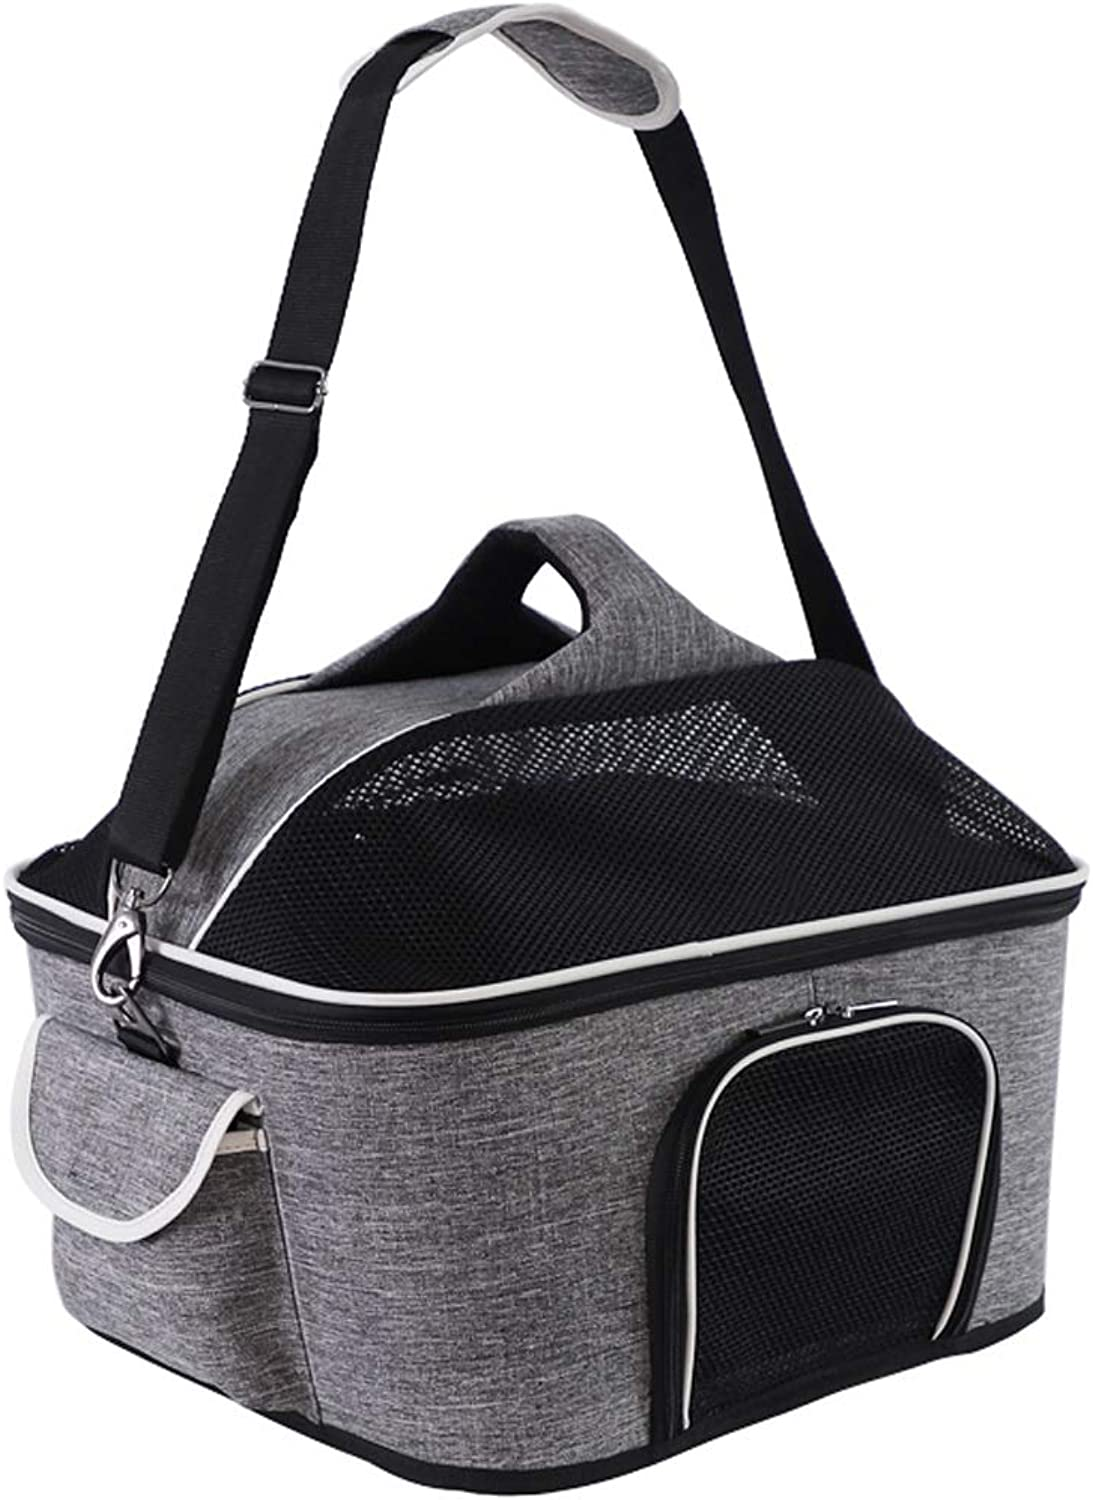 Portable Collapsible Breathable Pet Out Bag Pet Trolley Bag Cat Bag Breathable Car Pet Portable Backpack